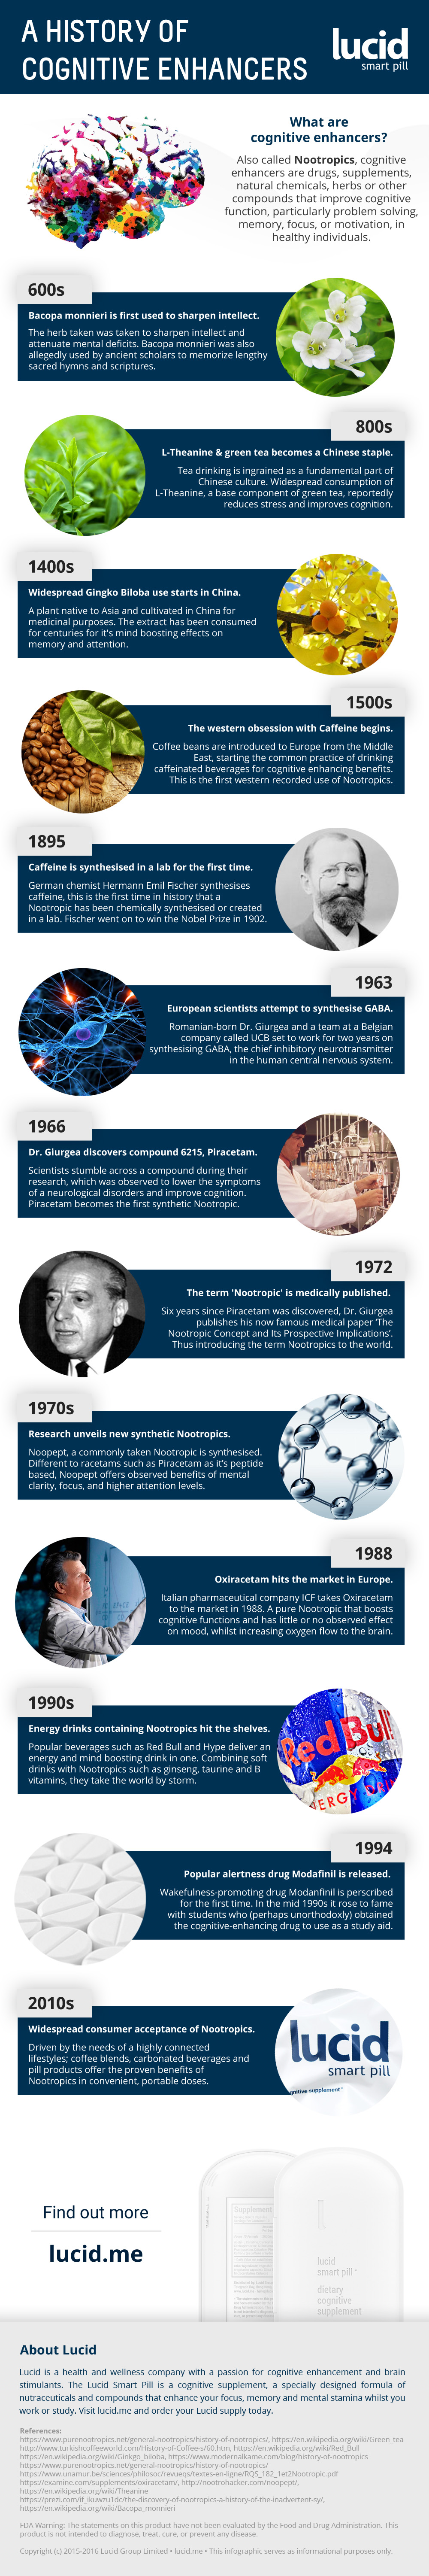 History of Cognitive Enhancers (Nootropics) - Lucid Smart Pill